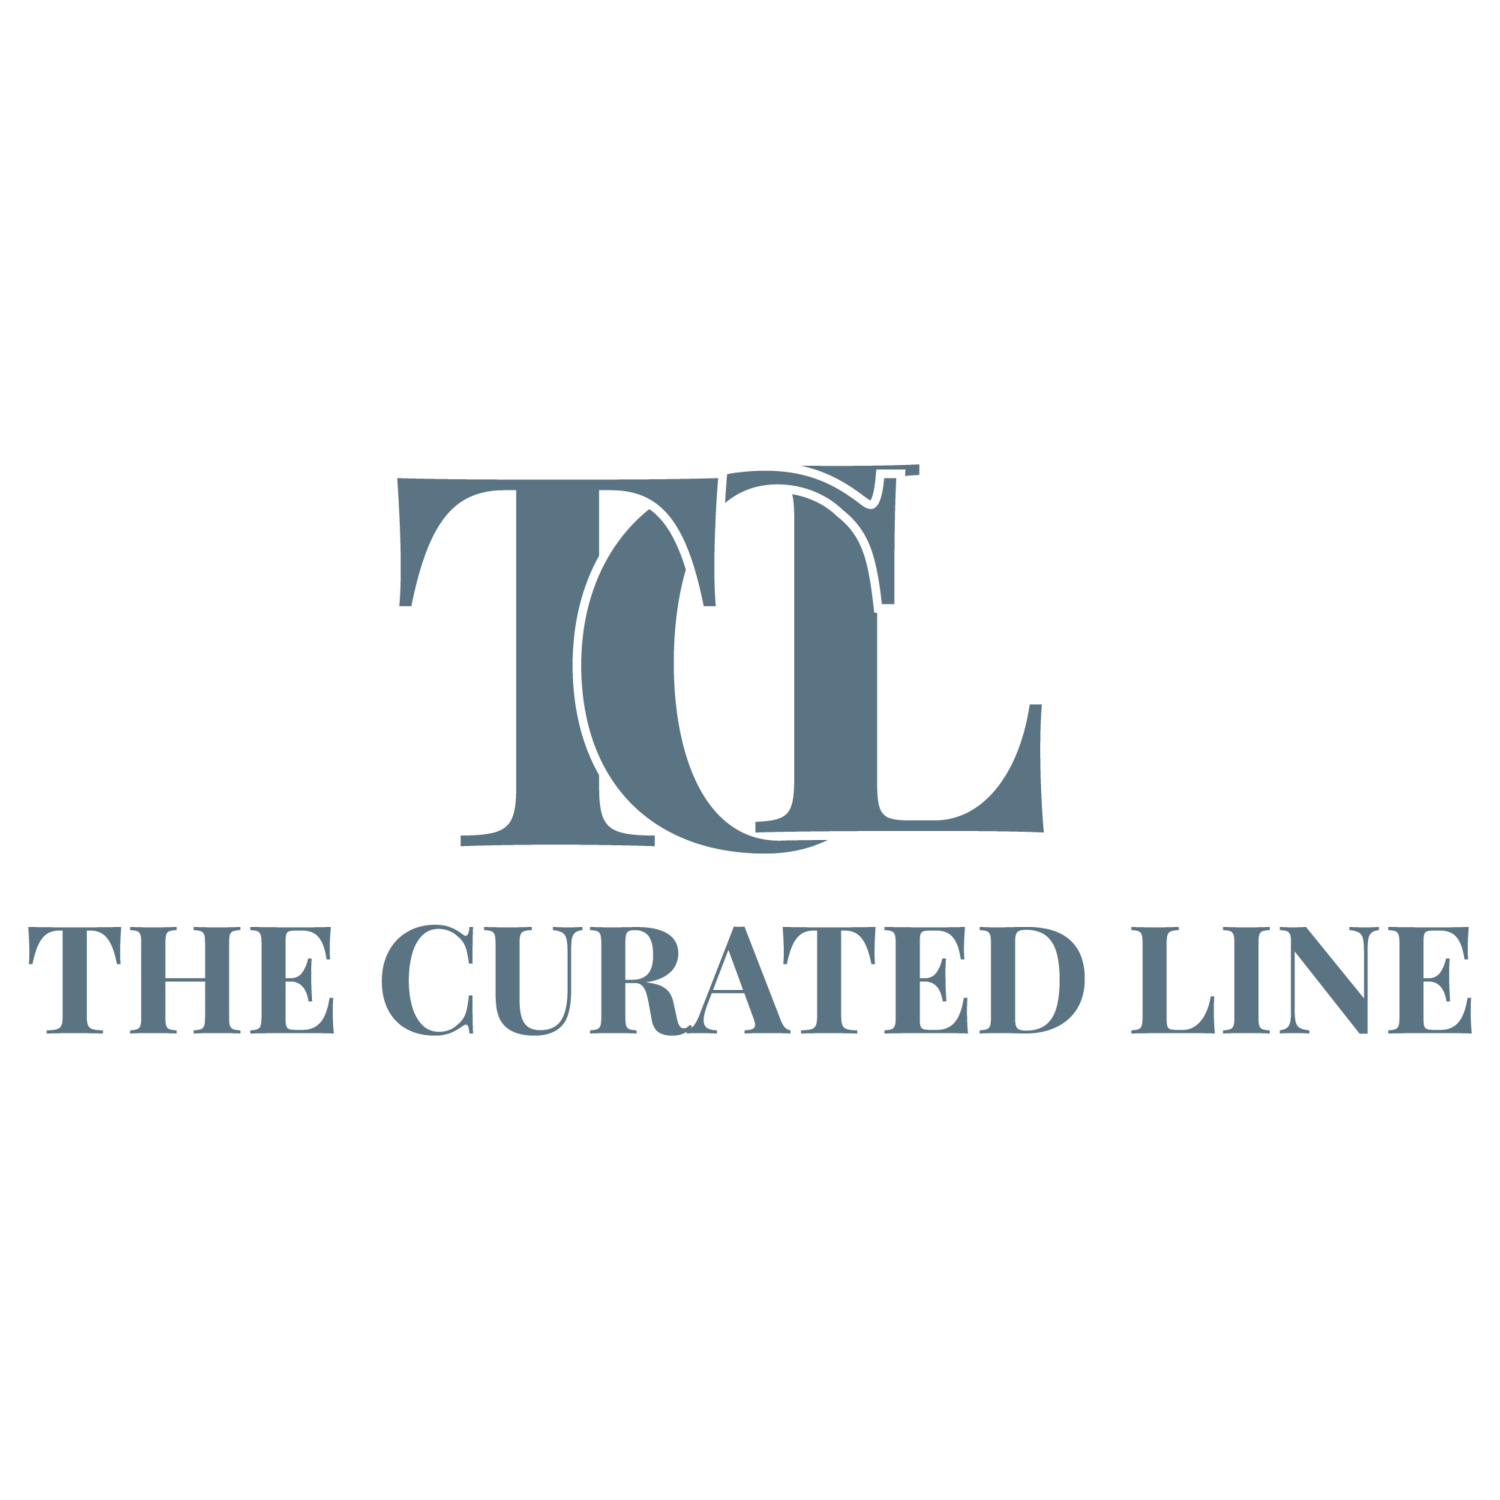 The Curated Line